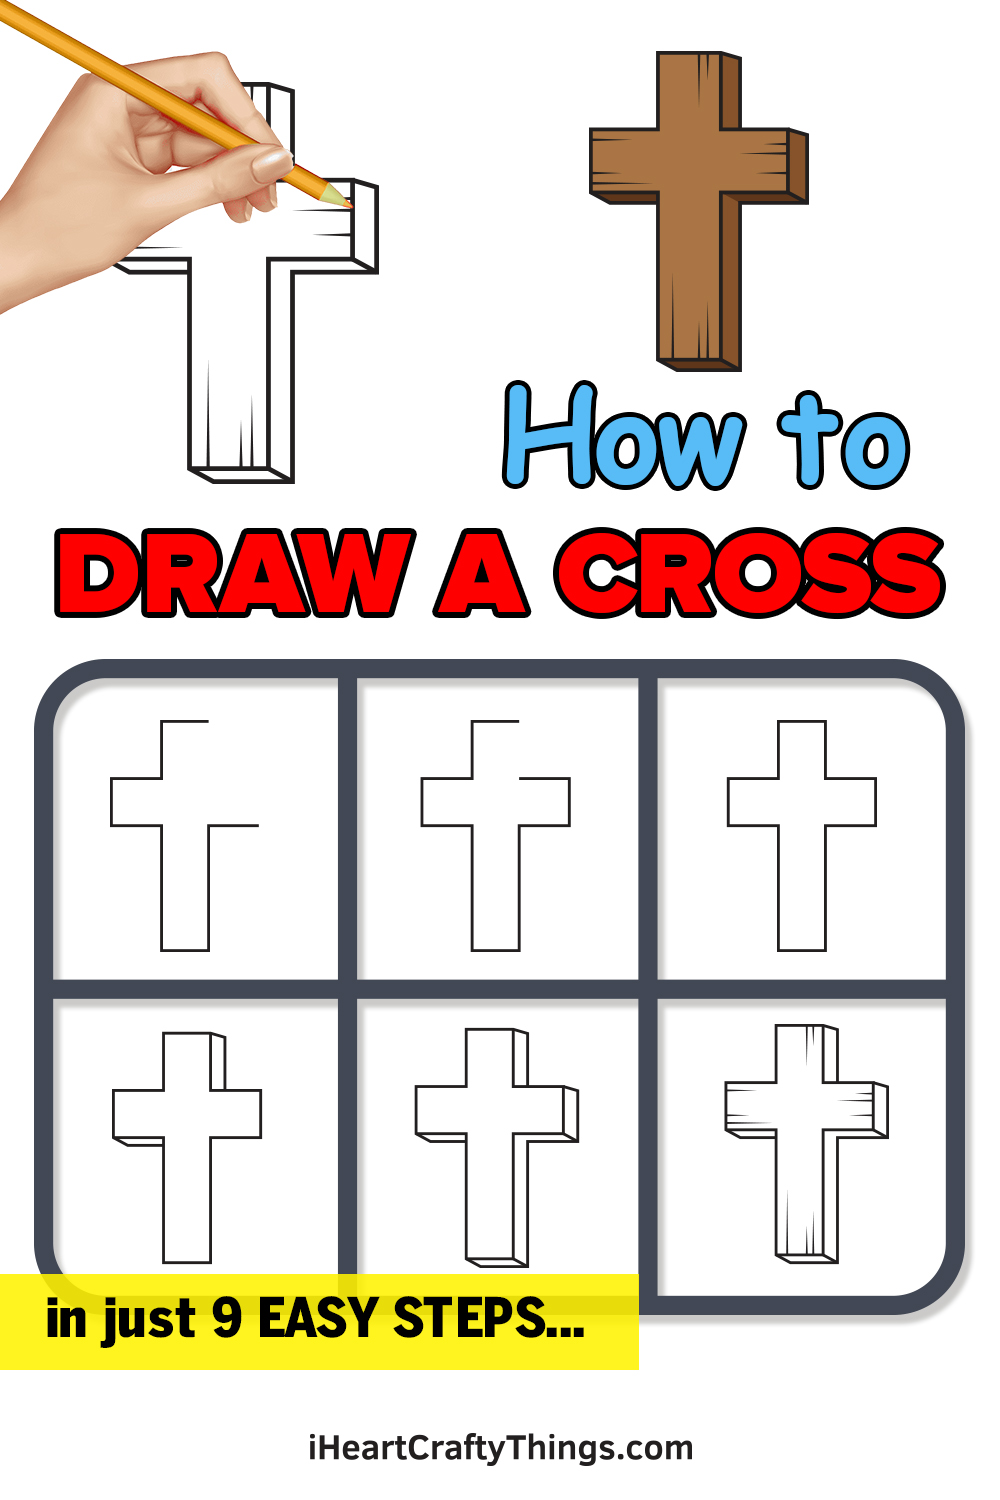 how to draw a cross in 9 easy steps